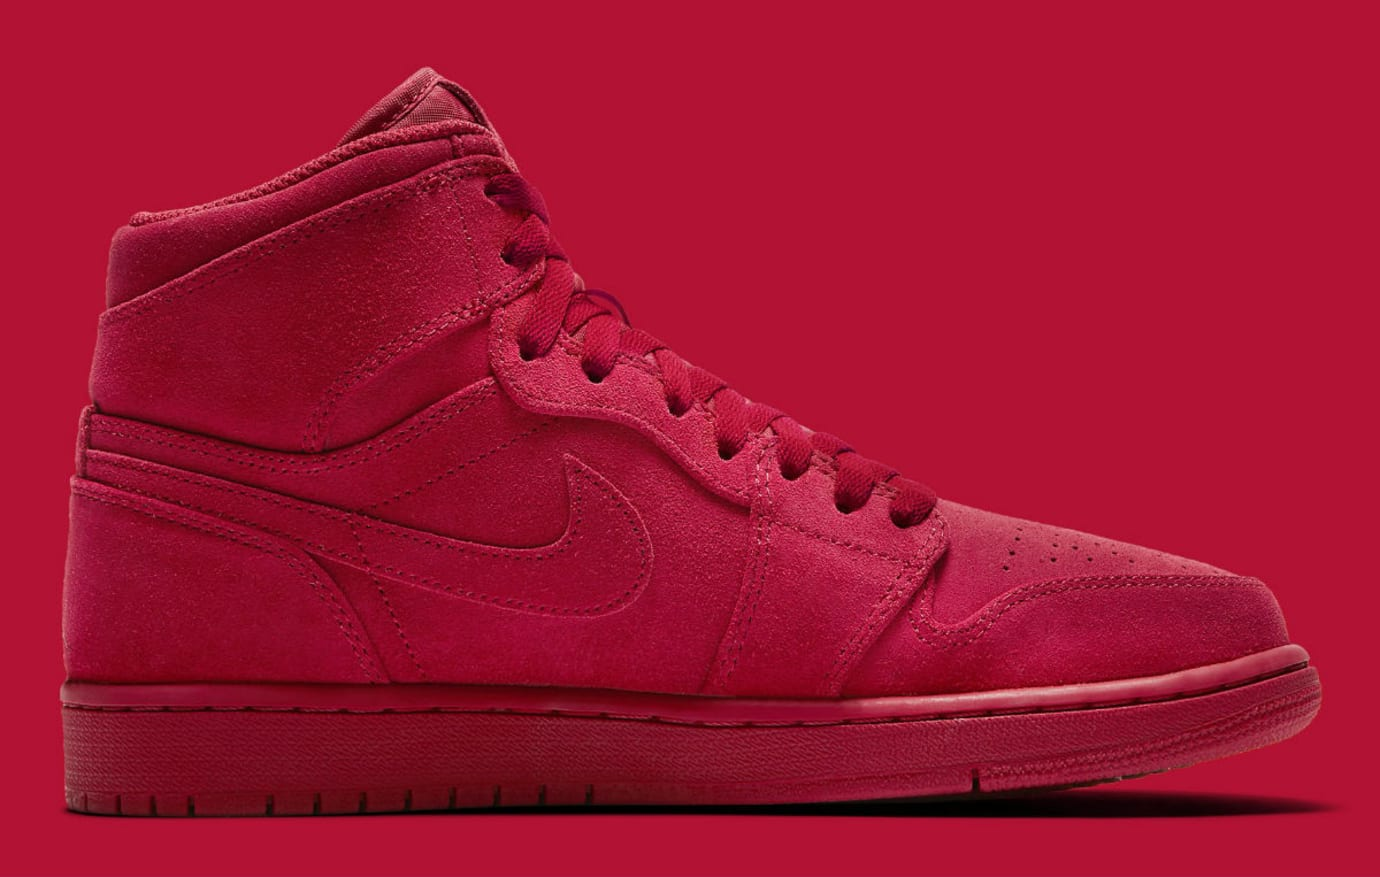 Air Jordan 1 High Red Suede Release Date Medial 332550-603 4ccecb19d6